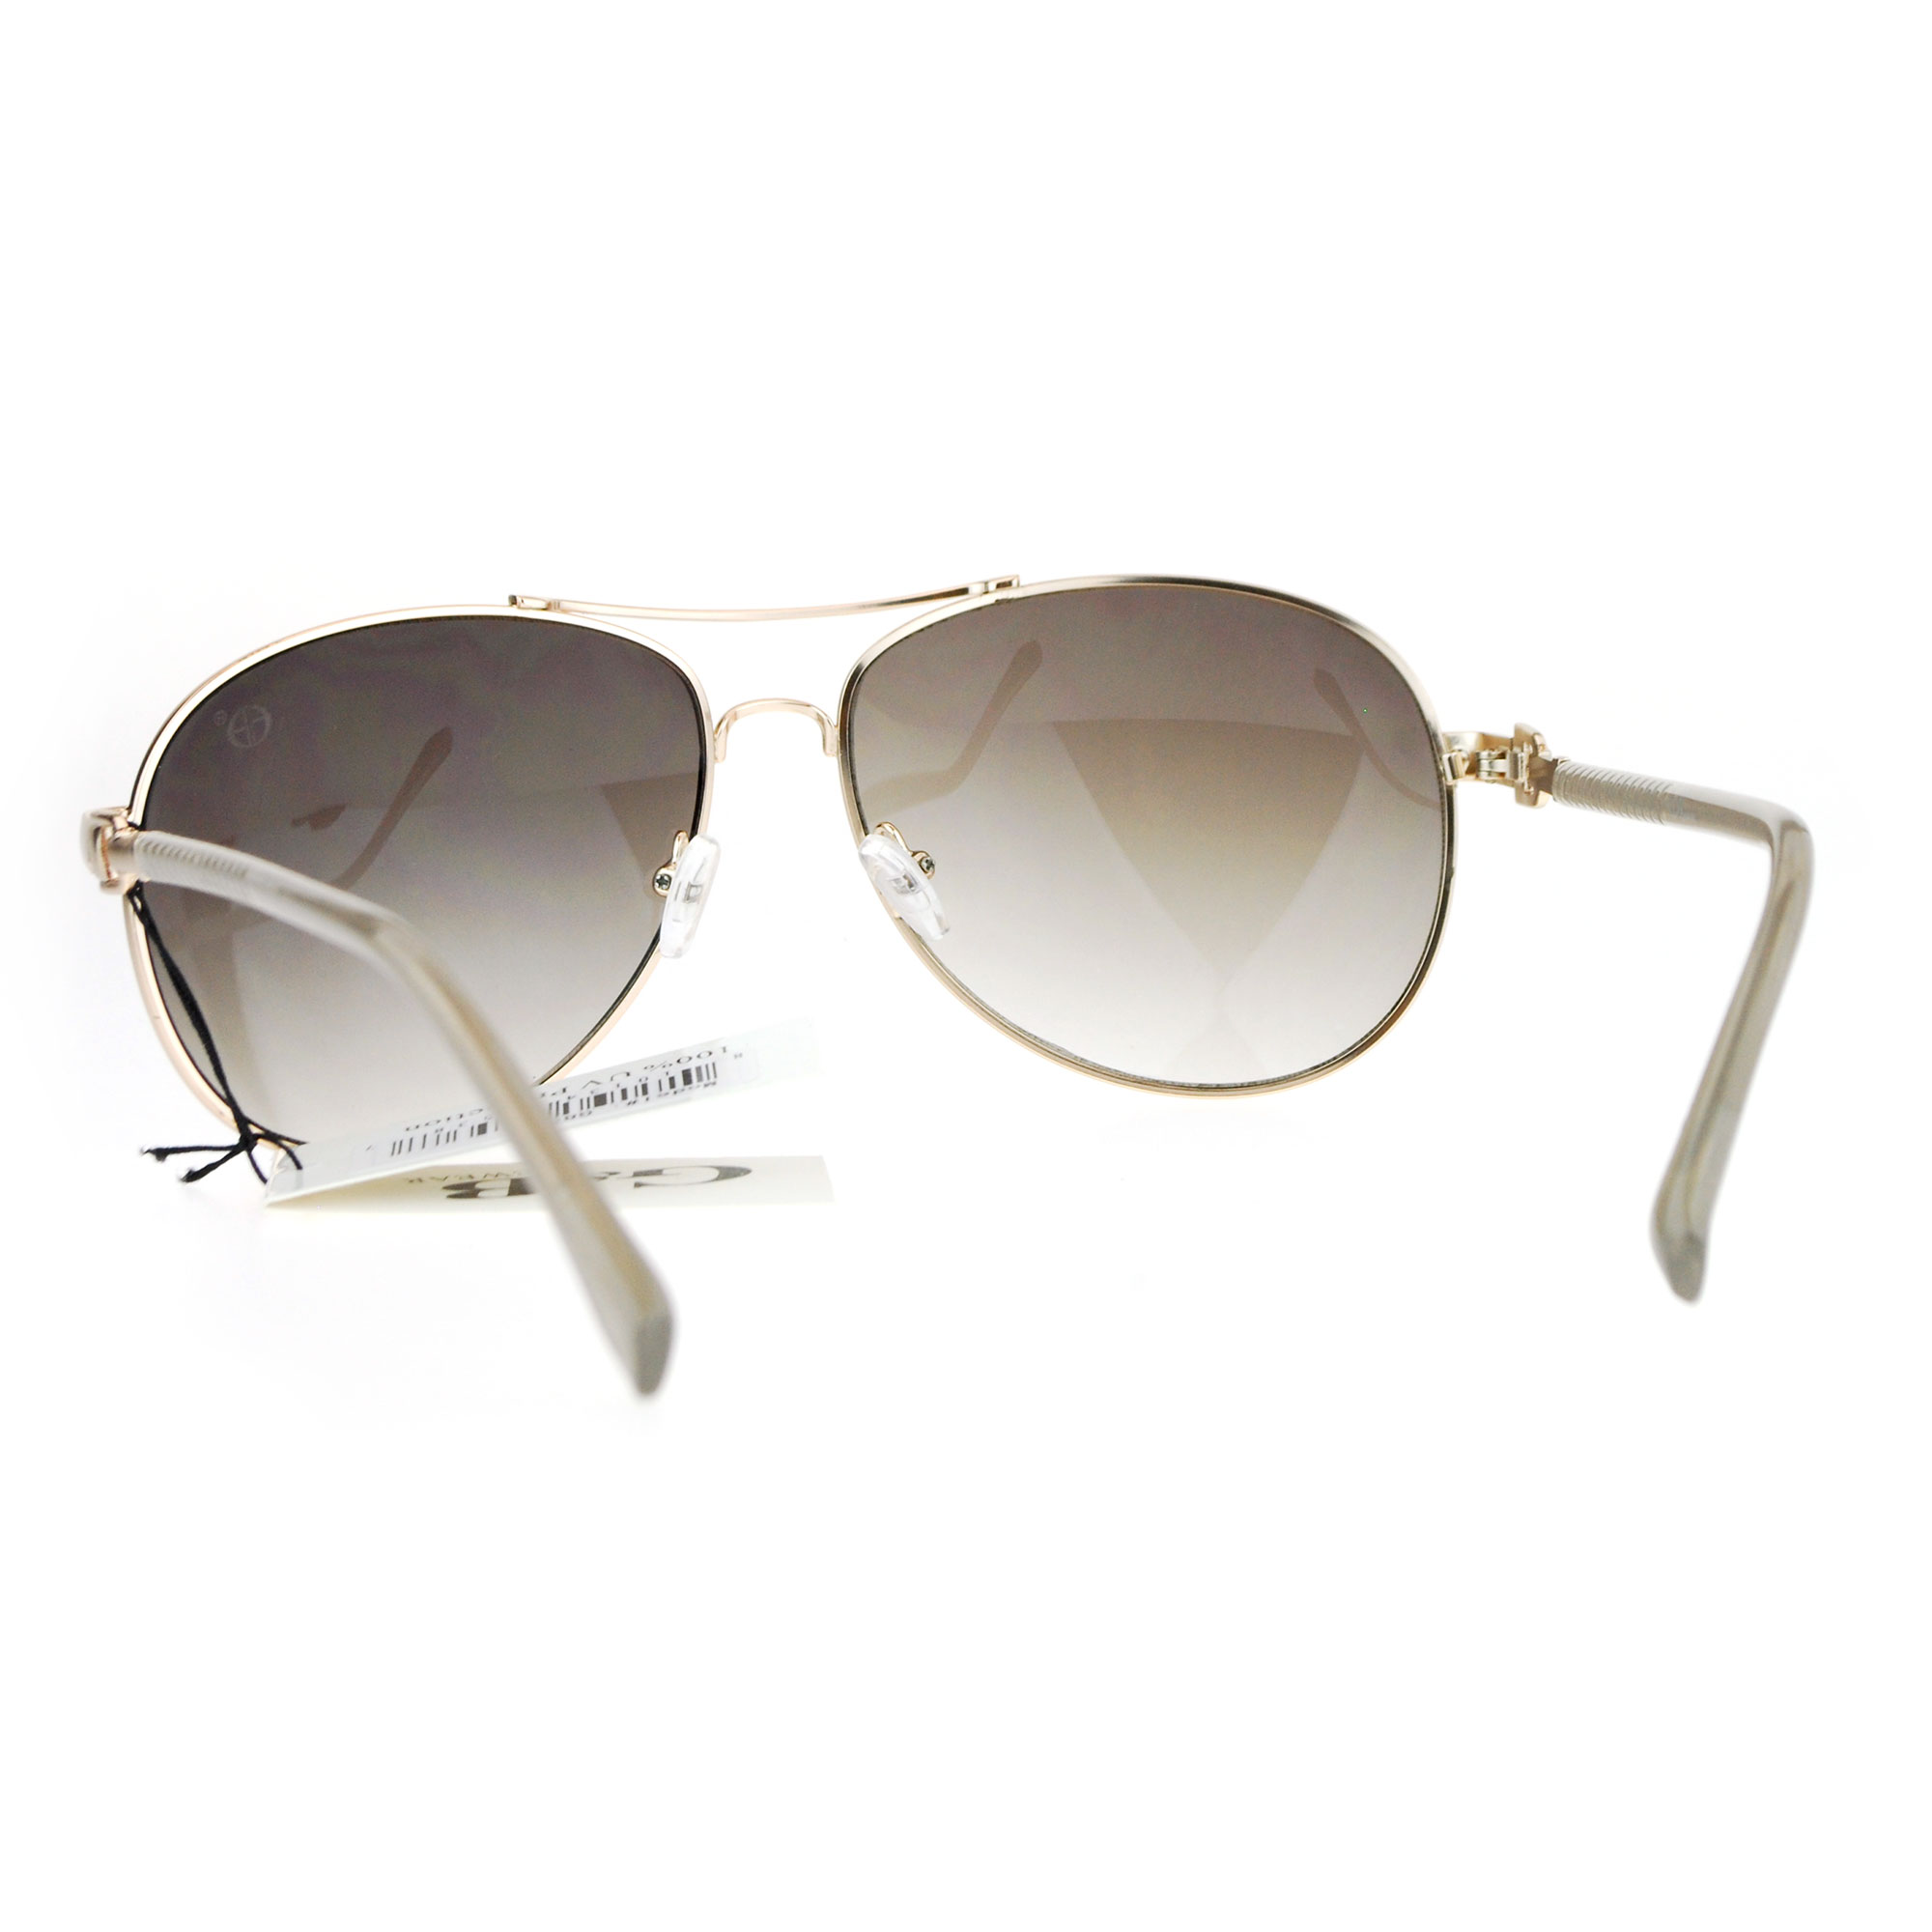 aviator sunglasses designer  Womens Jewel Hinge Designer Luxury Aviator Sunglasses